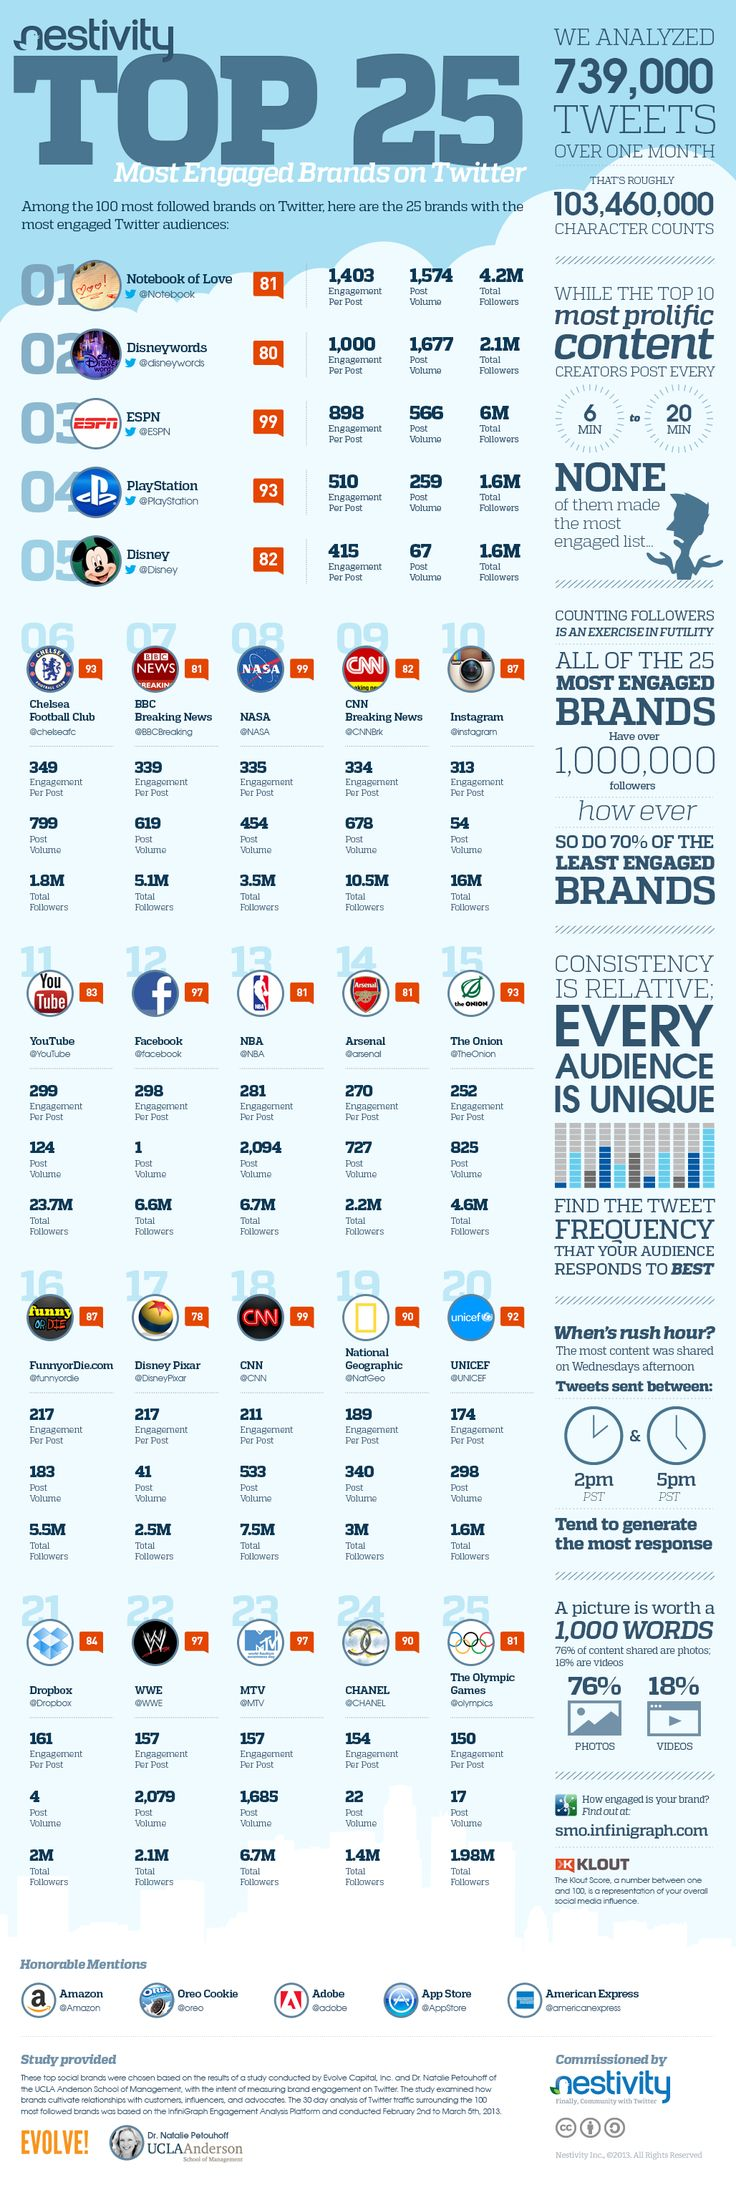 The Most Engaged Brands on Twitter